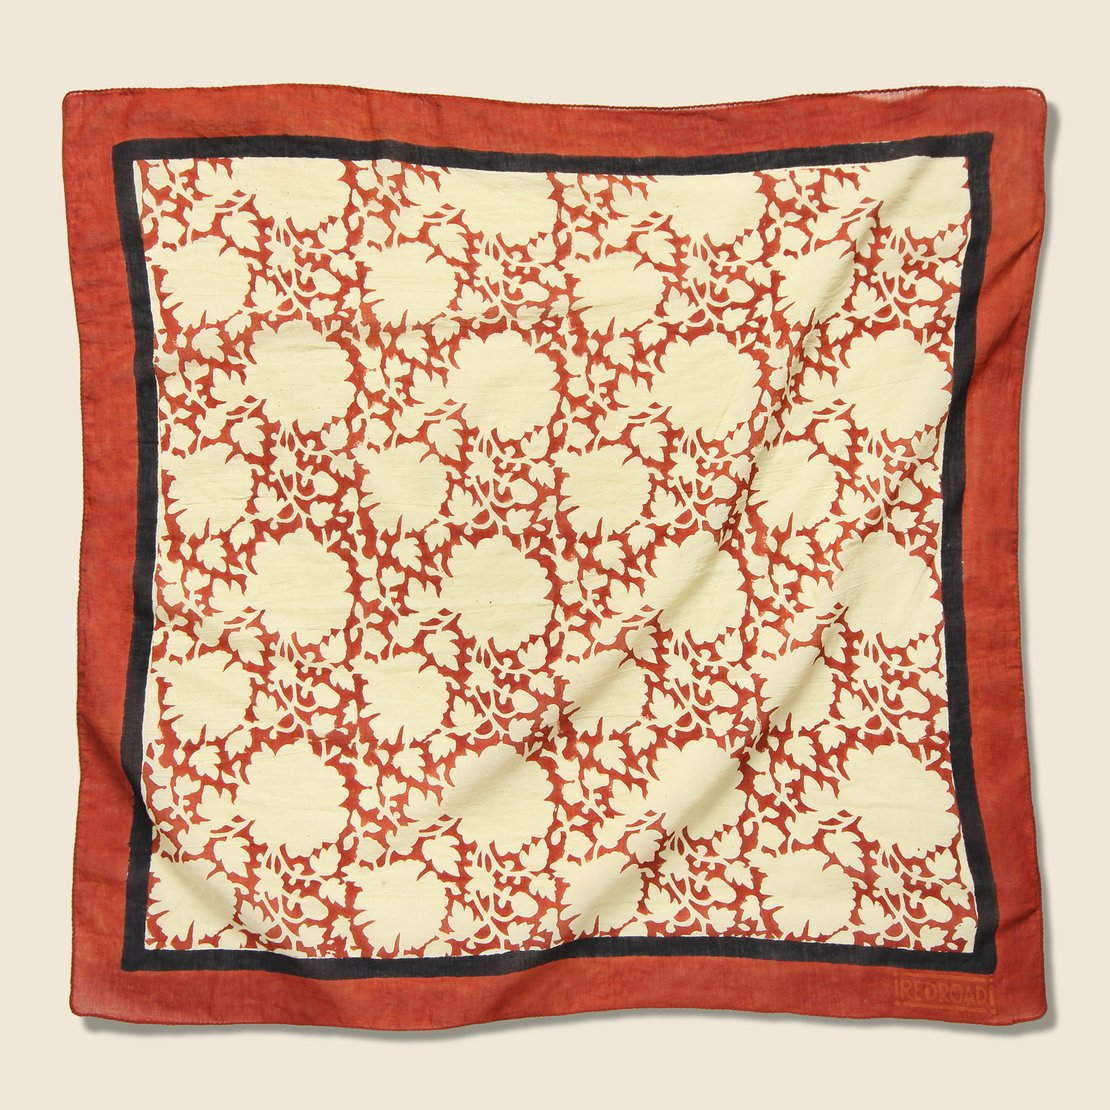 Red Road Safflower Madder Bandana - Red/Black Iron